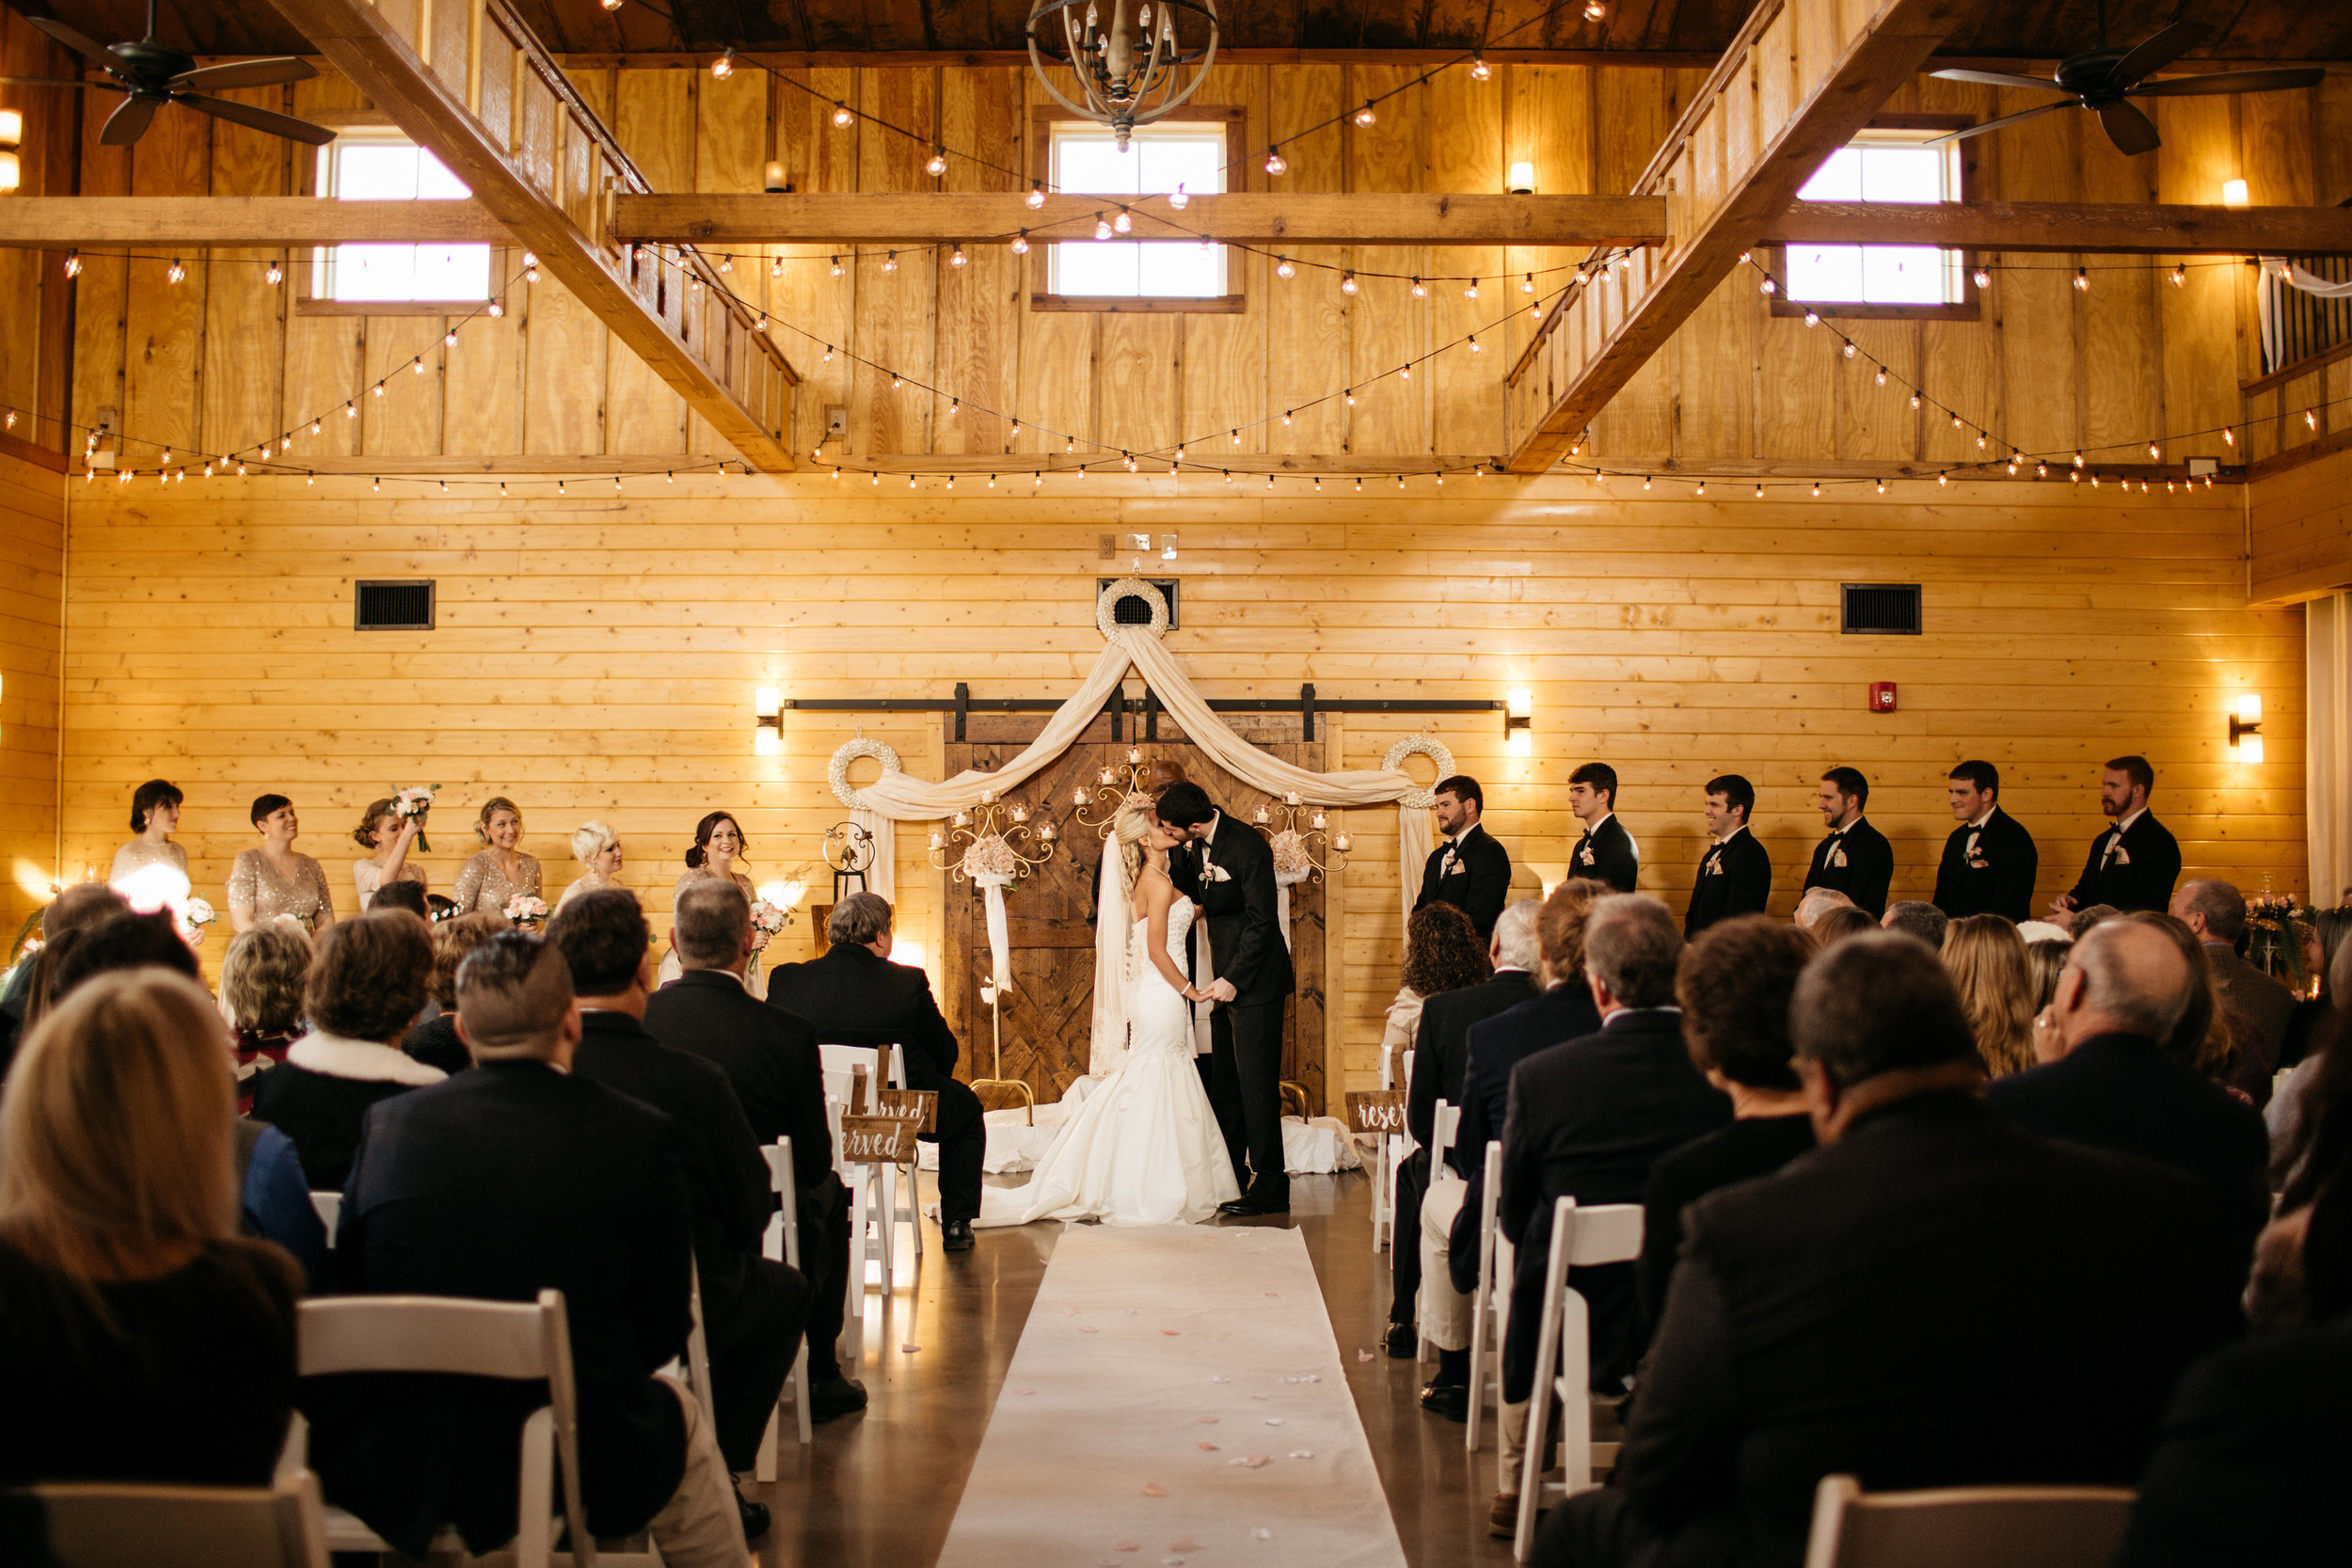 Photo by Brooke Miller Photography. Wedding on February 4, 2017